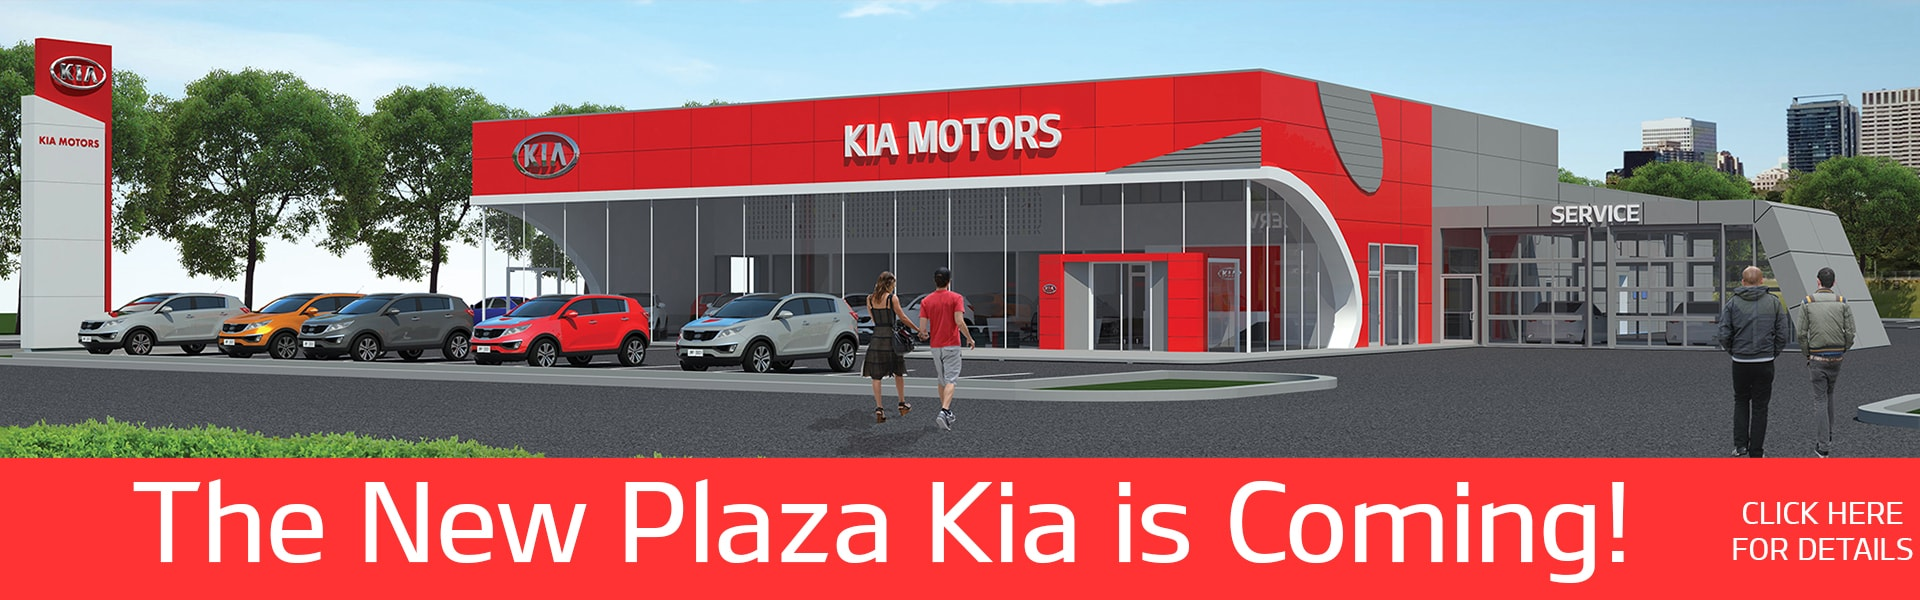 The New Plaza Kia Coming Soon!